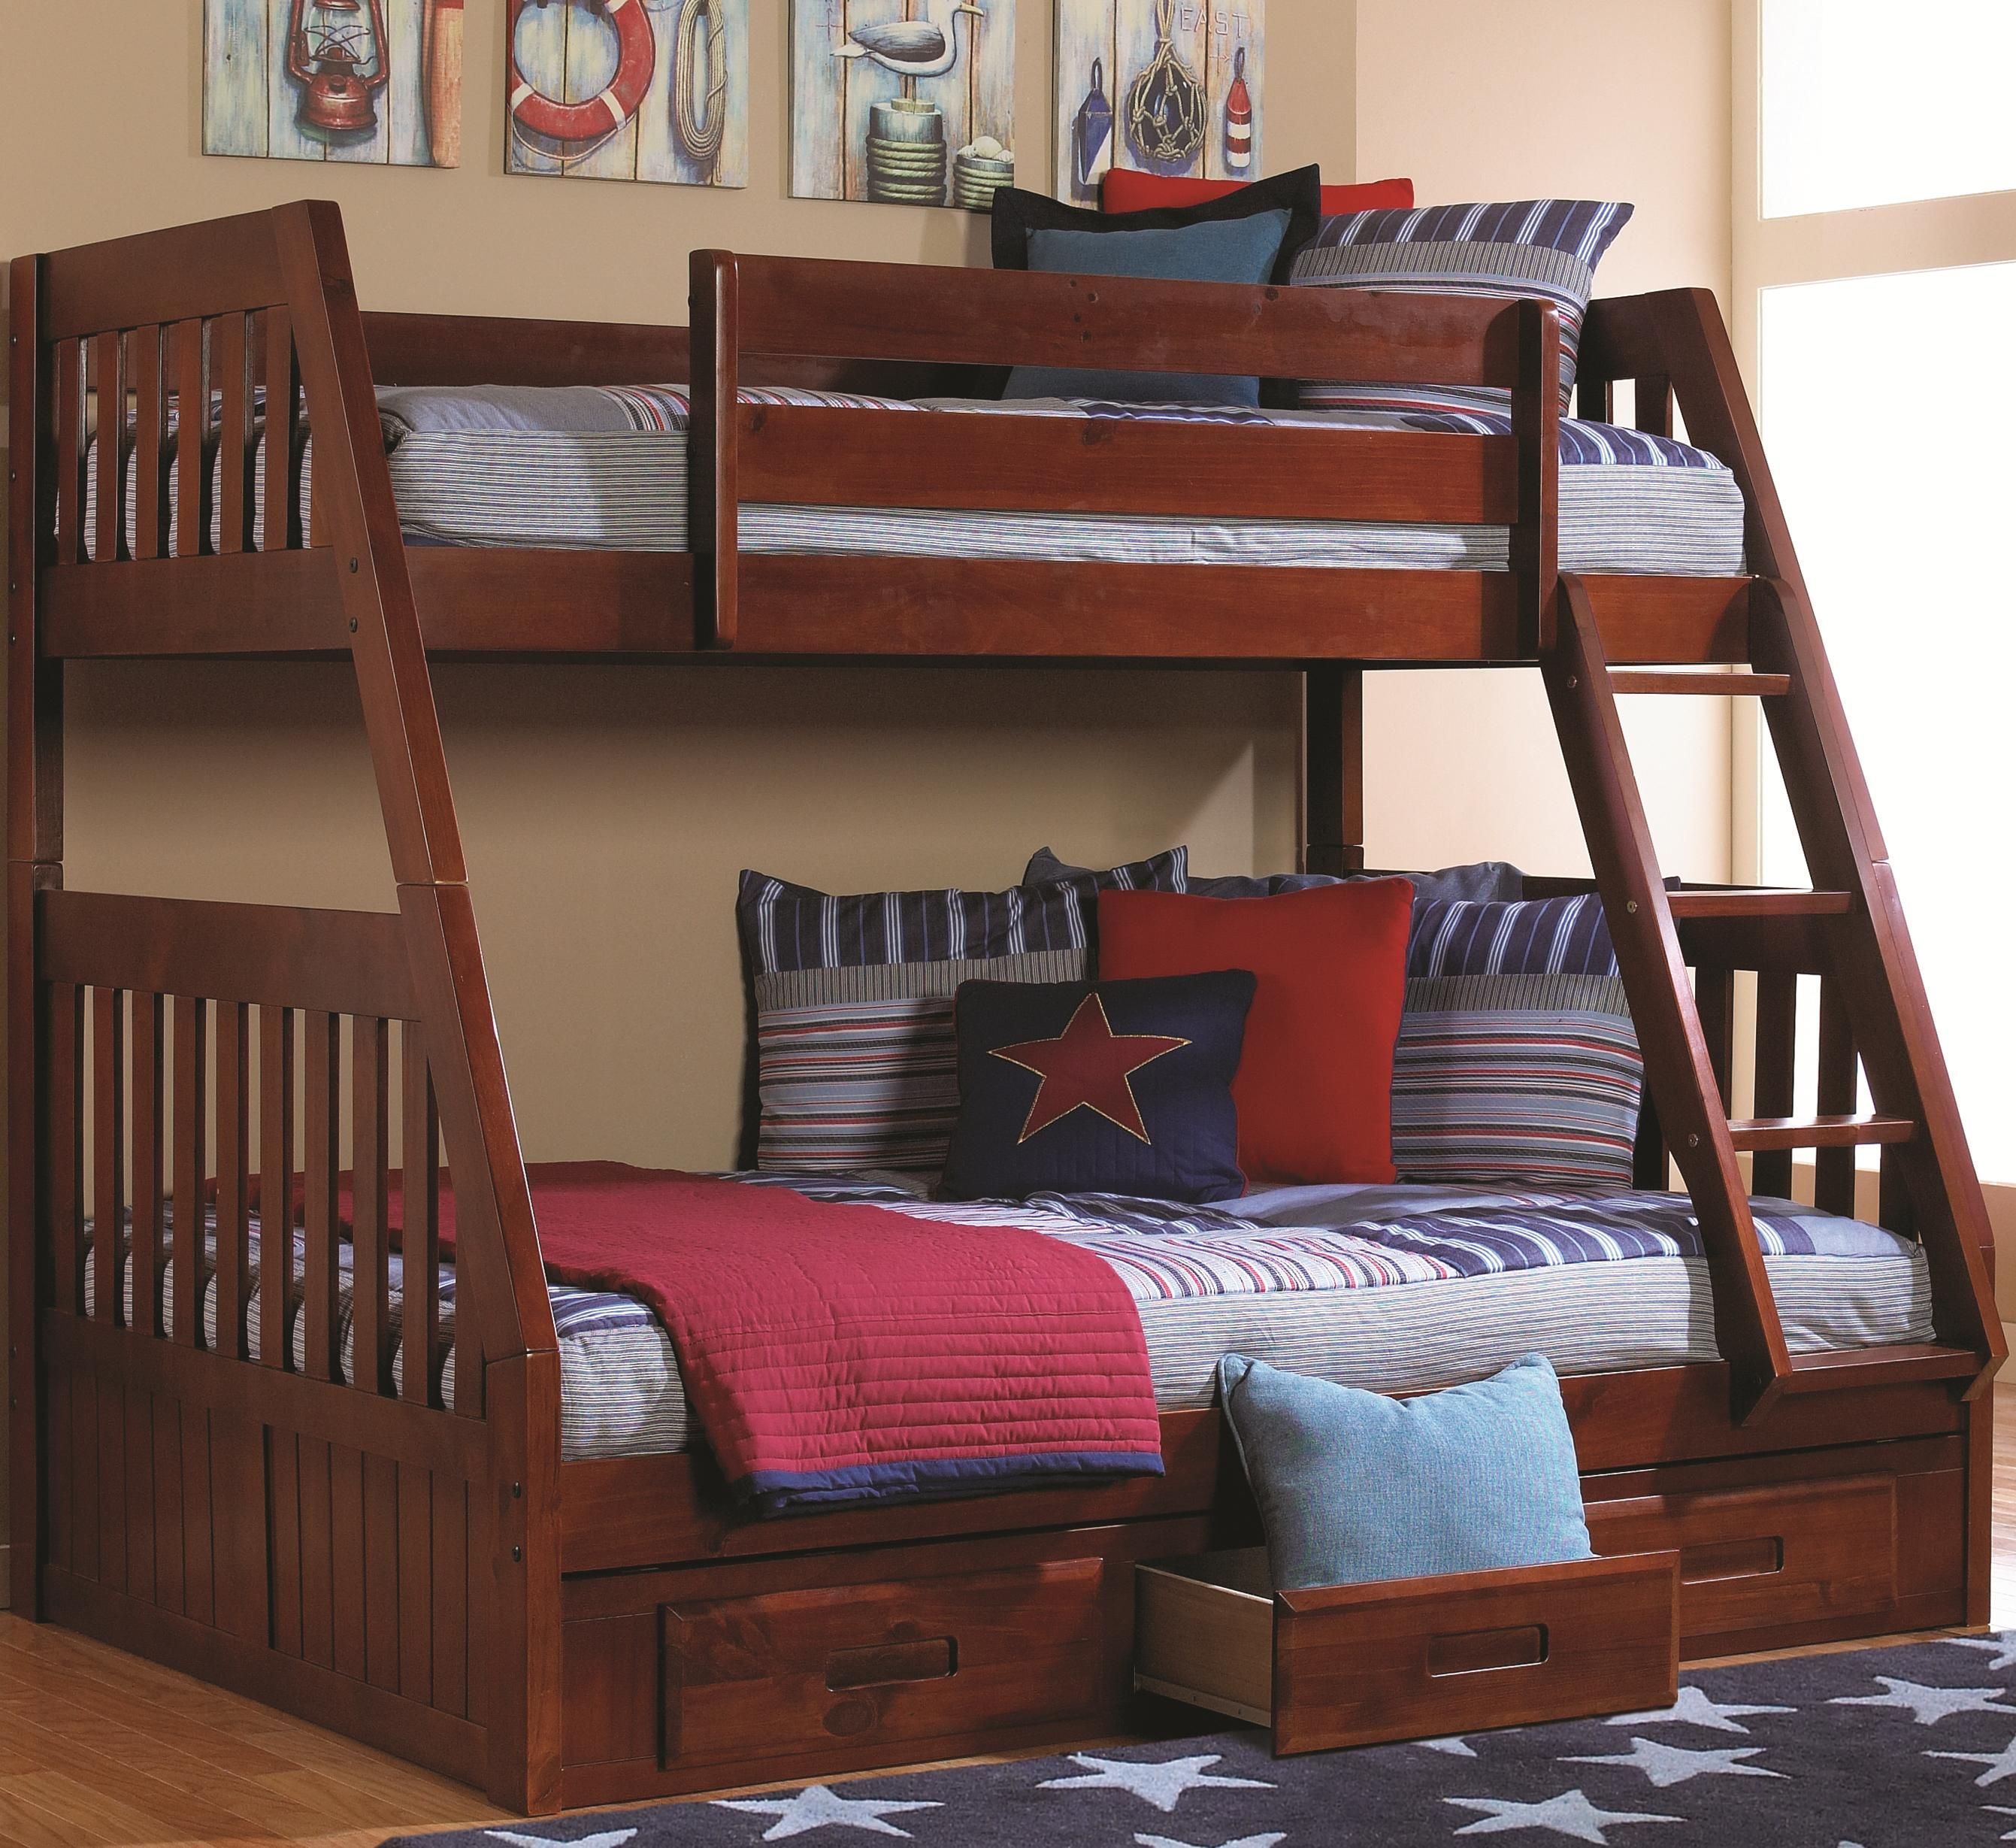 brilliant twin bedroom queen stunning on bed bunk over metal rustic custom inside of double beds uncategorized fabulous within perpendicular in full size